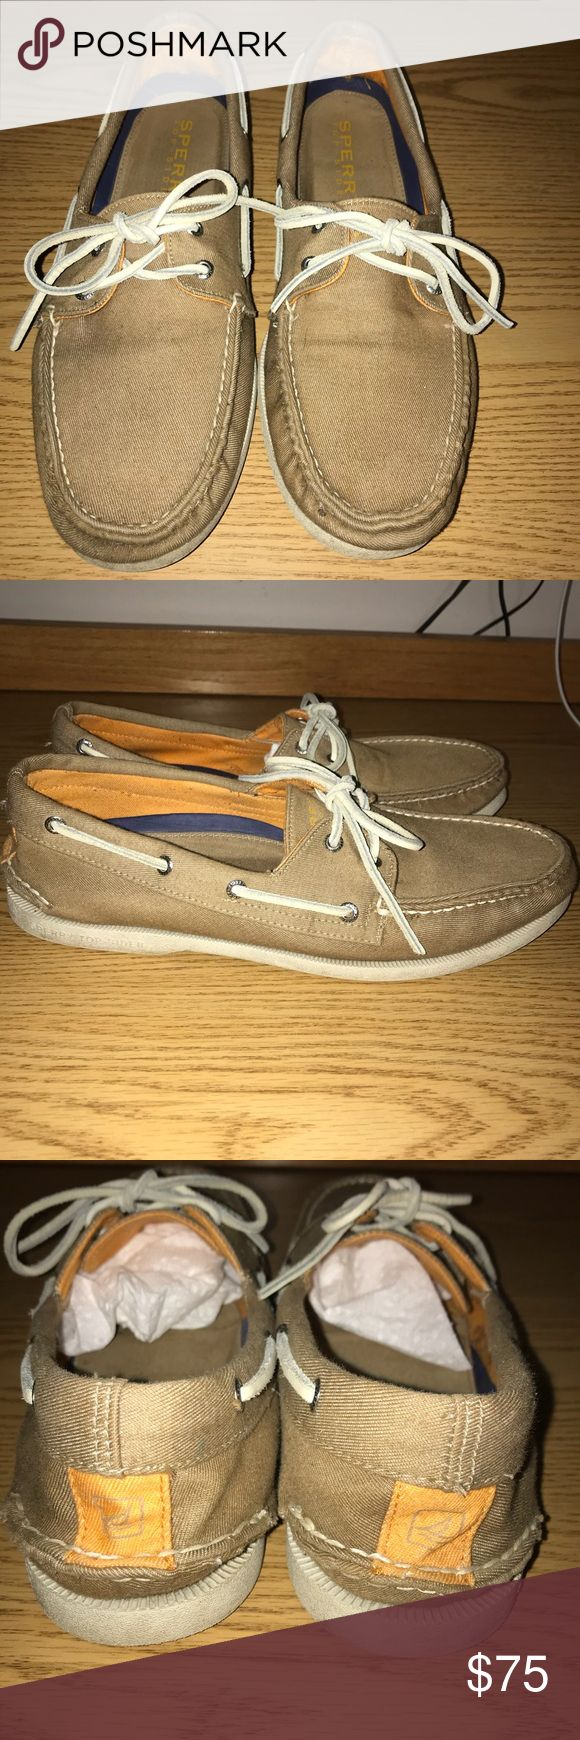 Sperry Top Siders Like-new condition. Only worn a few times. Size 12M. Discounted shipping on my first sale! Sperry Top-Sider Shoes Boat Shoes